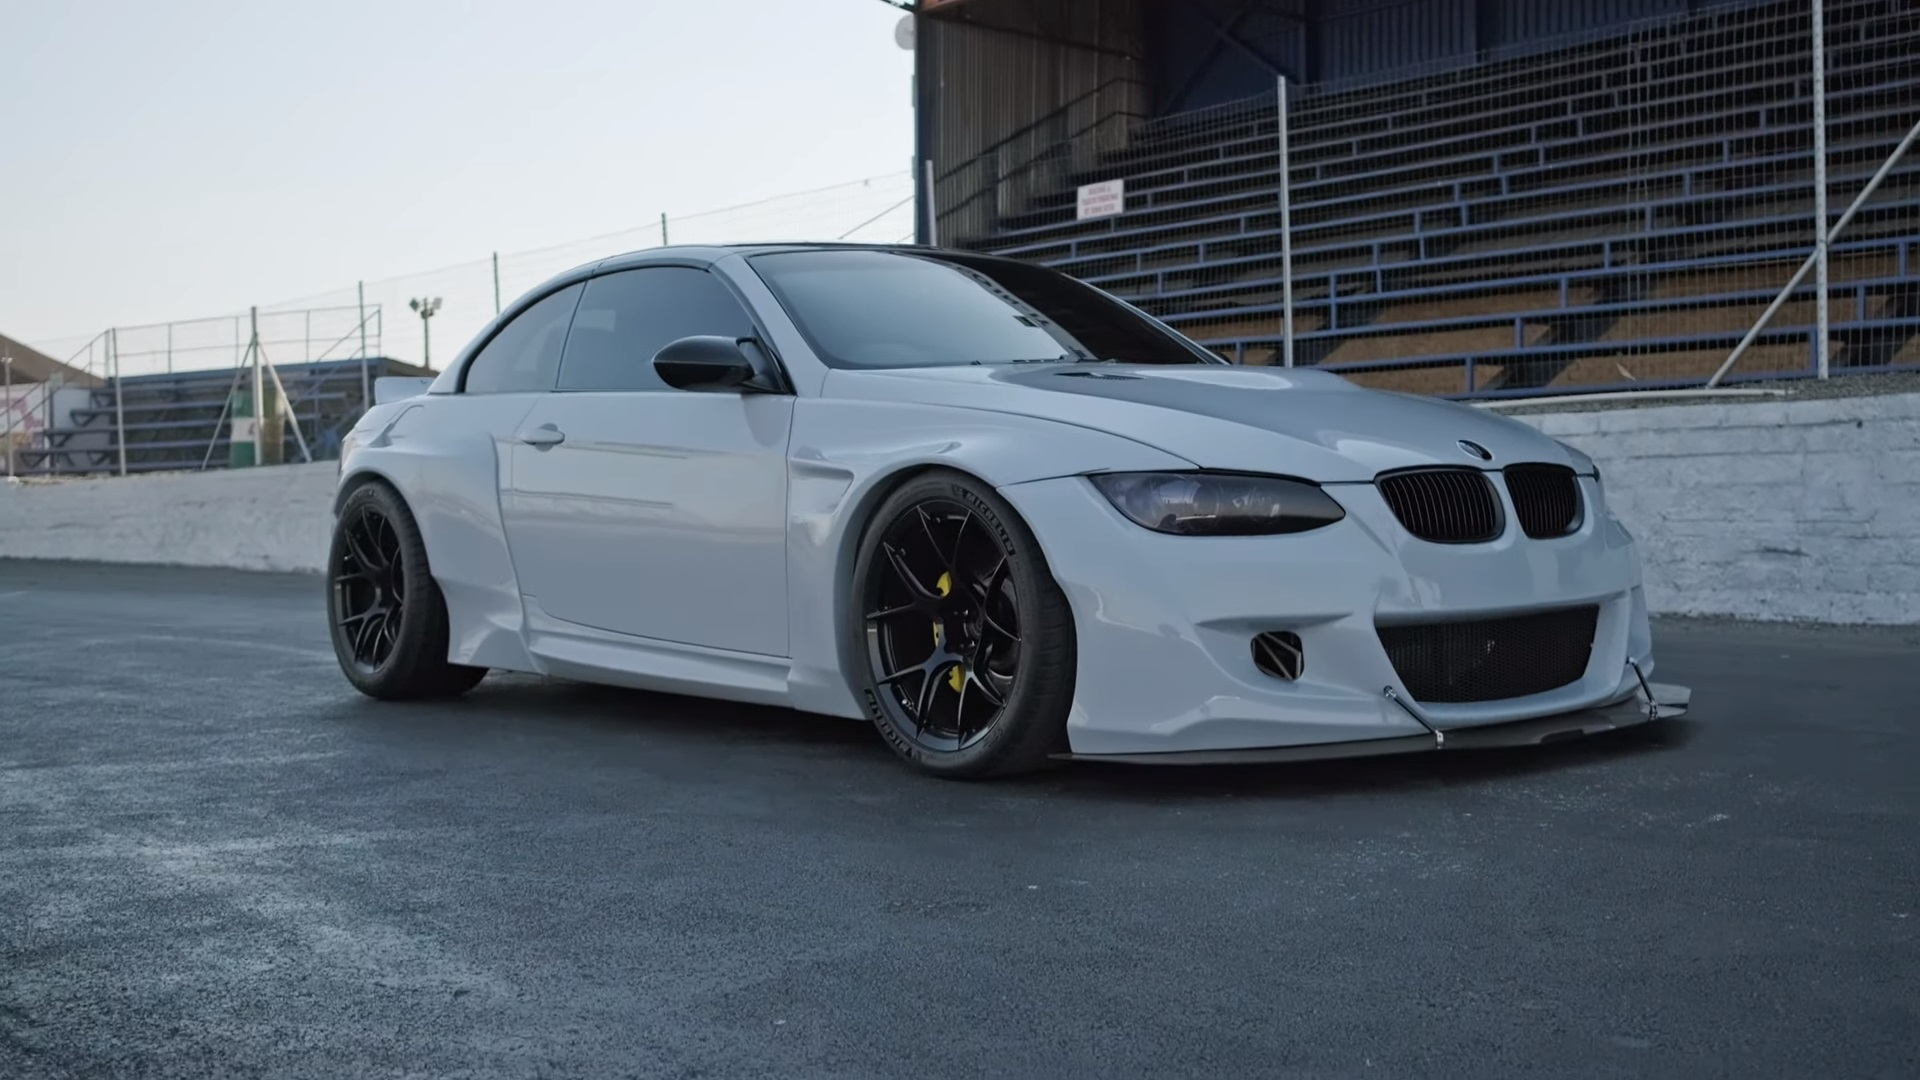 Pandem Widebody Bmw M3 With Maserati V8 Engine Swap Is Absolutely Special Autoevolution